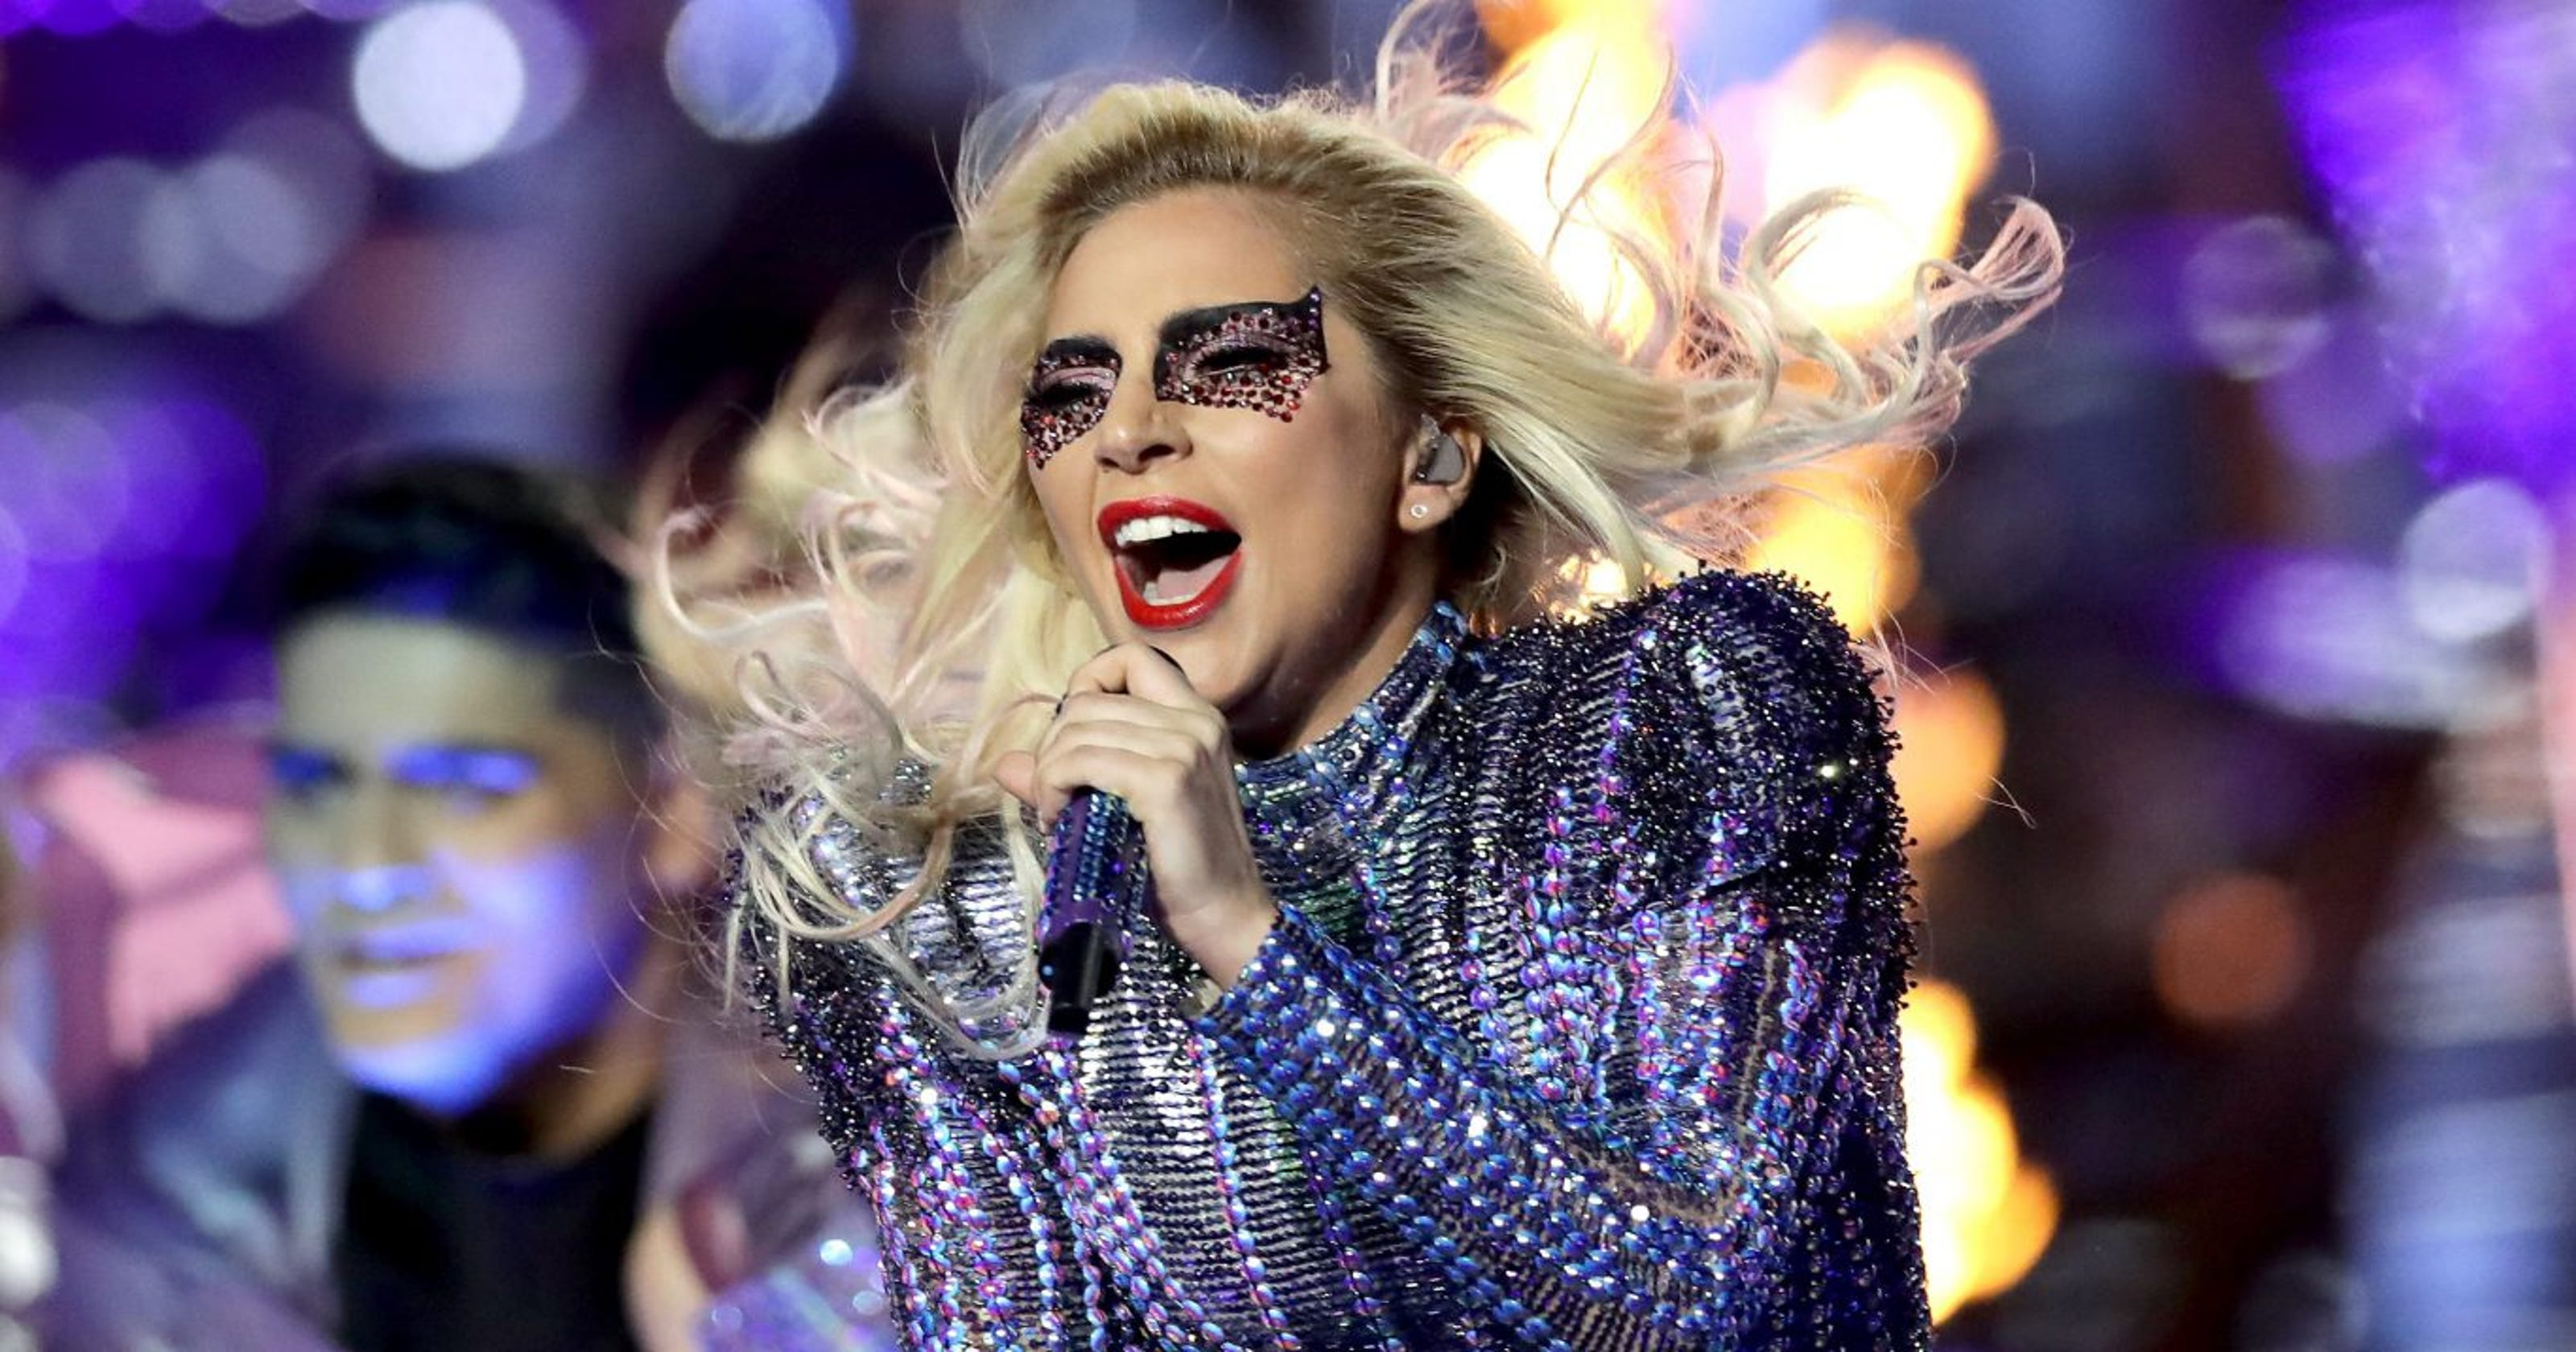 Lady Gaga takes advice from her own music after tumble off stage: 'Just Dance. Gonna be ok'